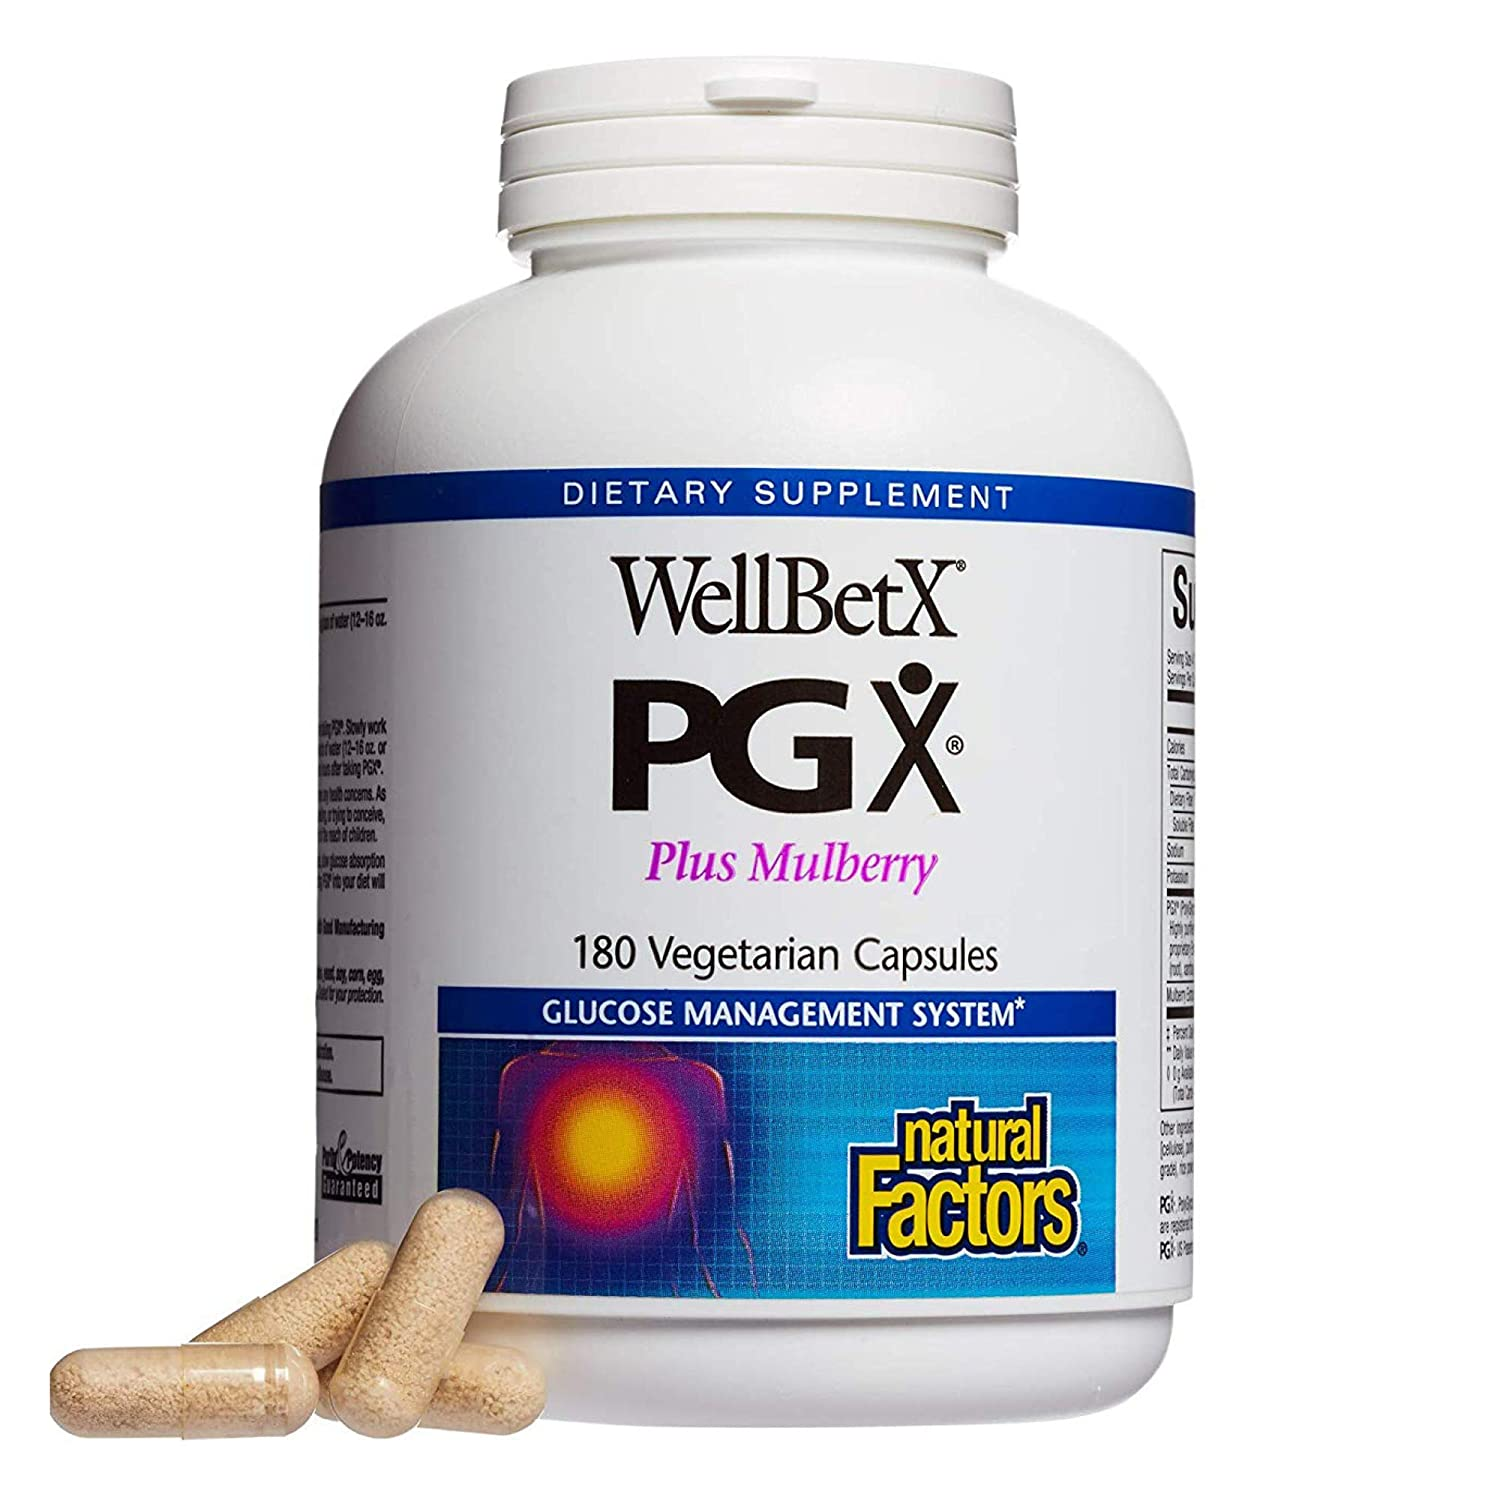 PGX by Natural Factors, WellBetX Plus Mulberry, 180 vegetarian capsules (45 servings)